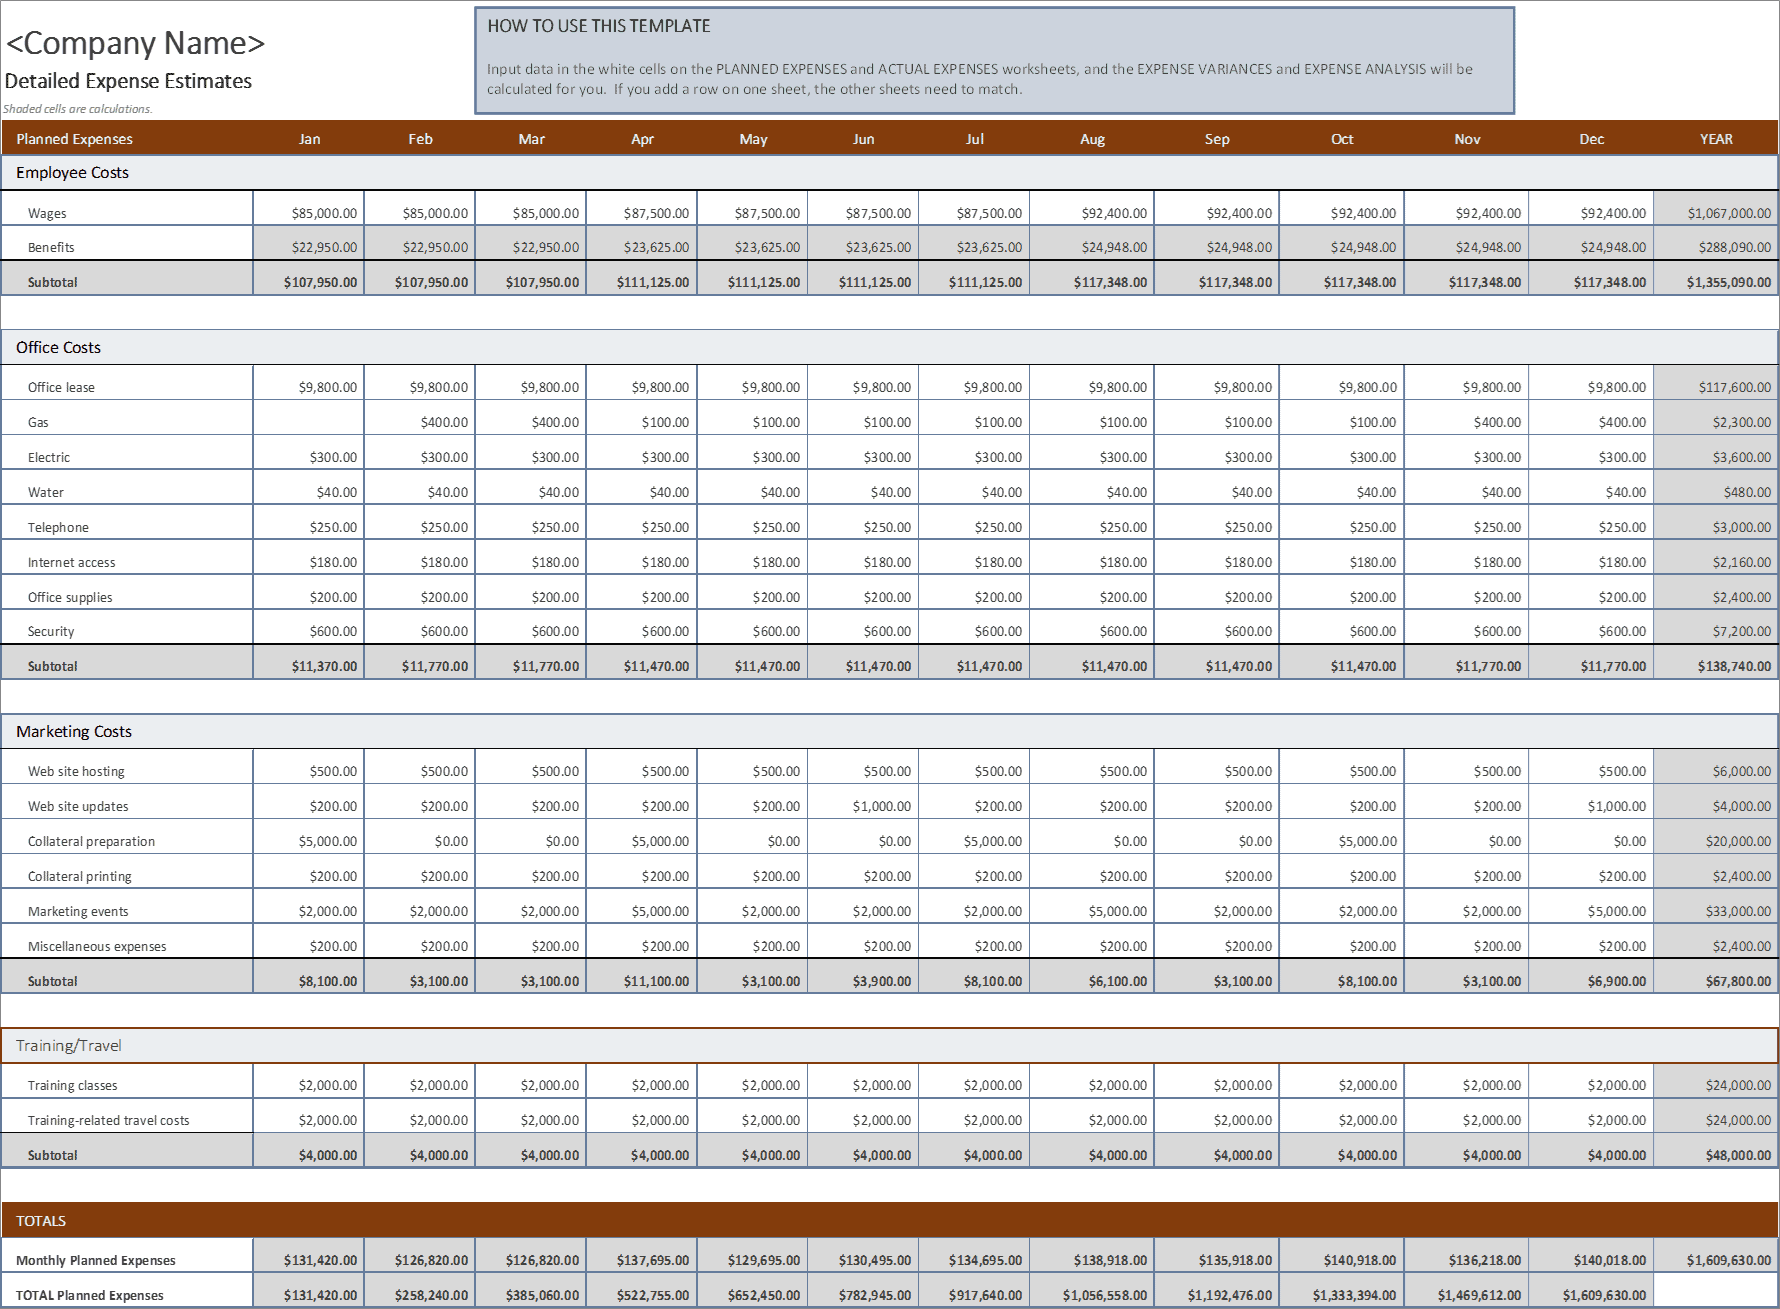 expenses to budget for